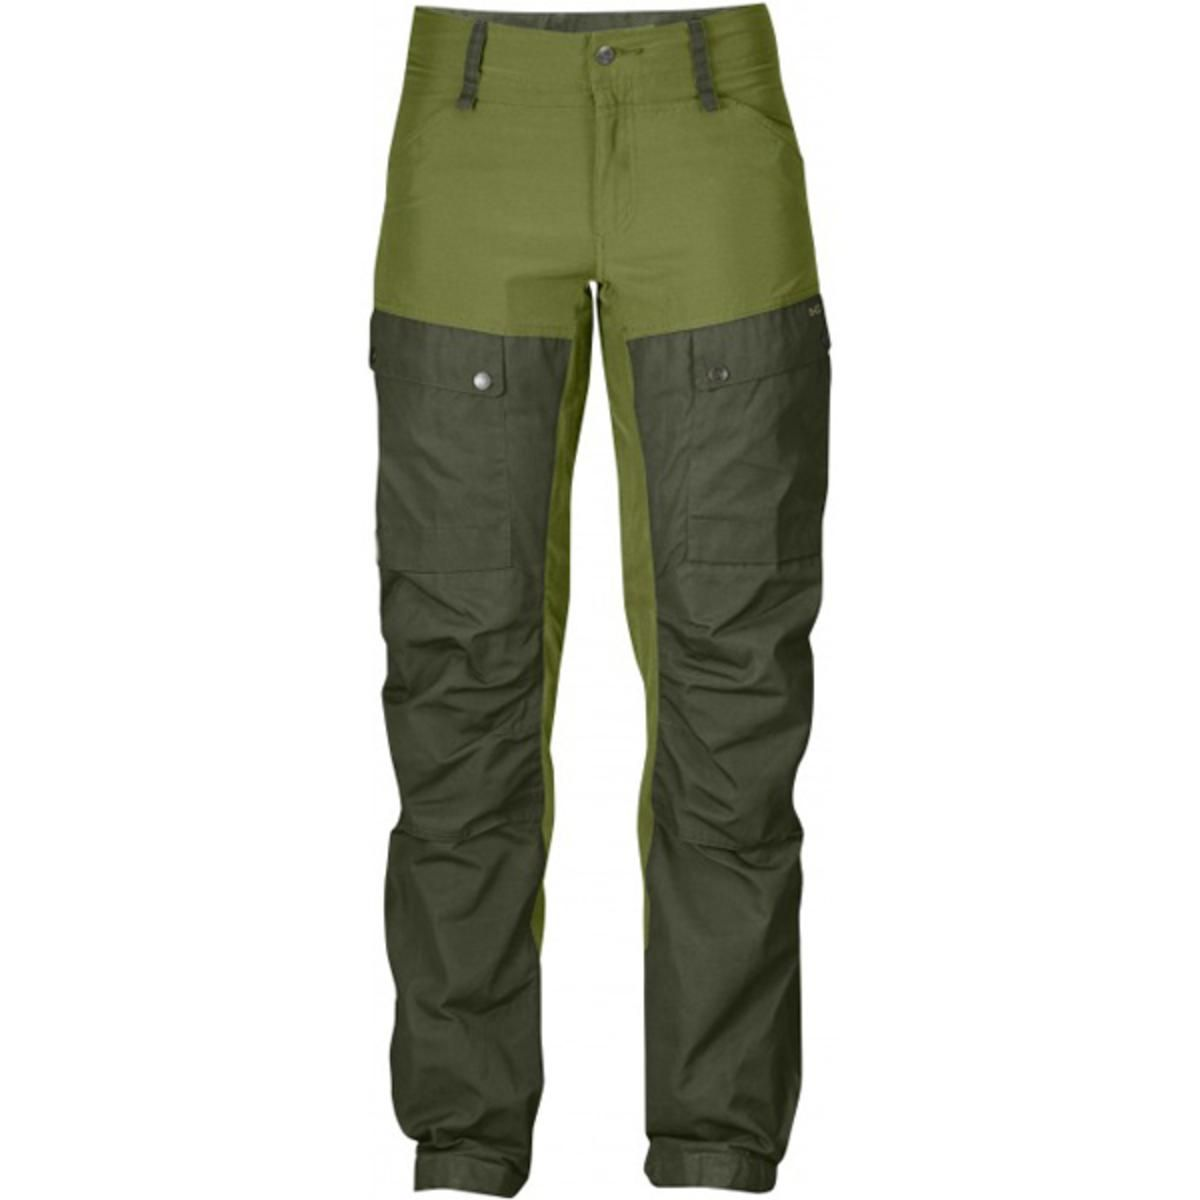 a85c70d821b22 FjallRaven Women's Keb Trousers Regular - Olive - The Warming Store